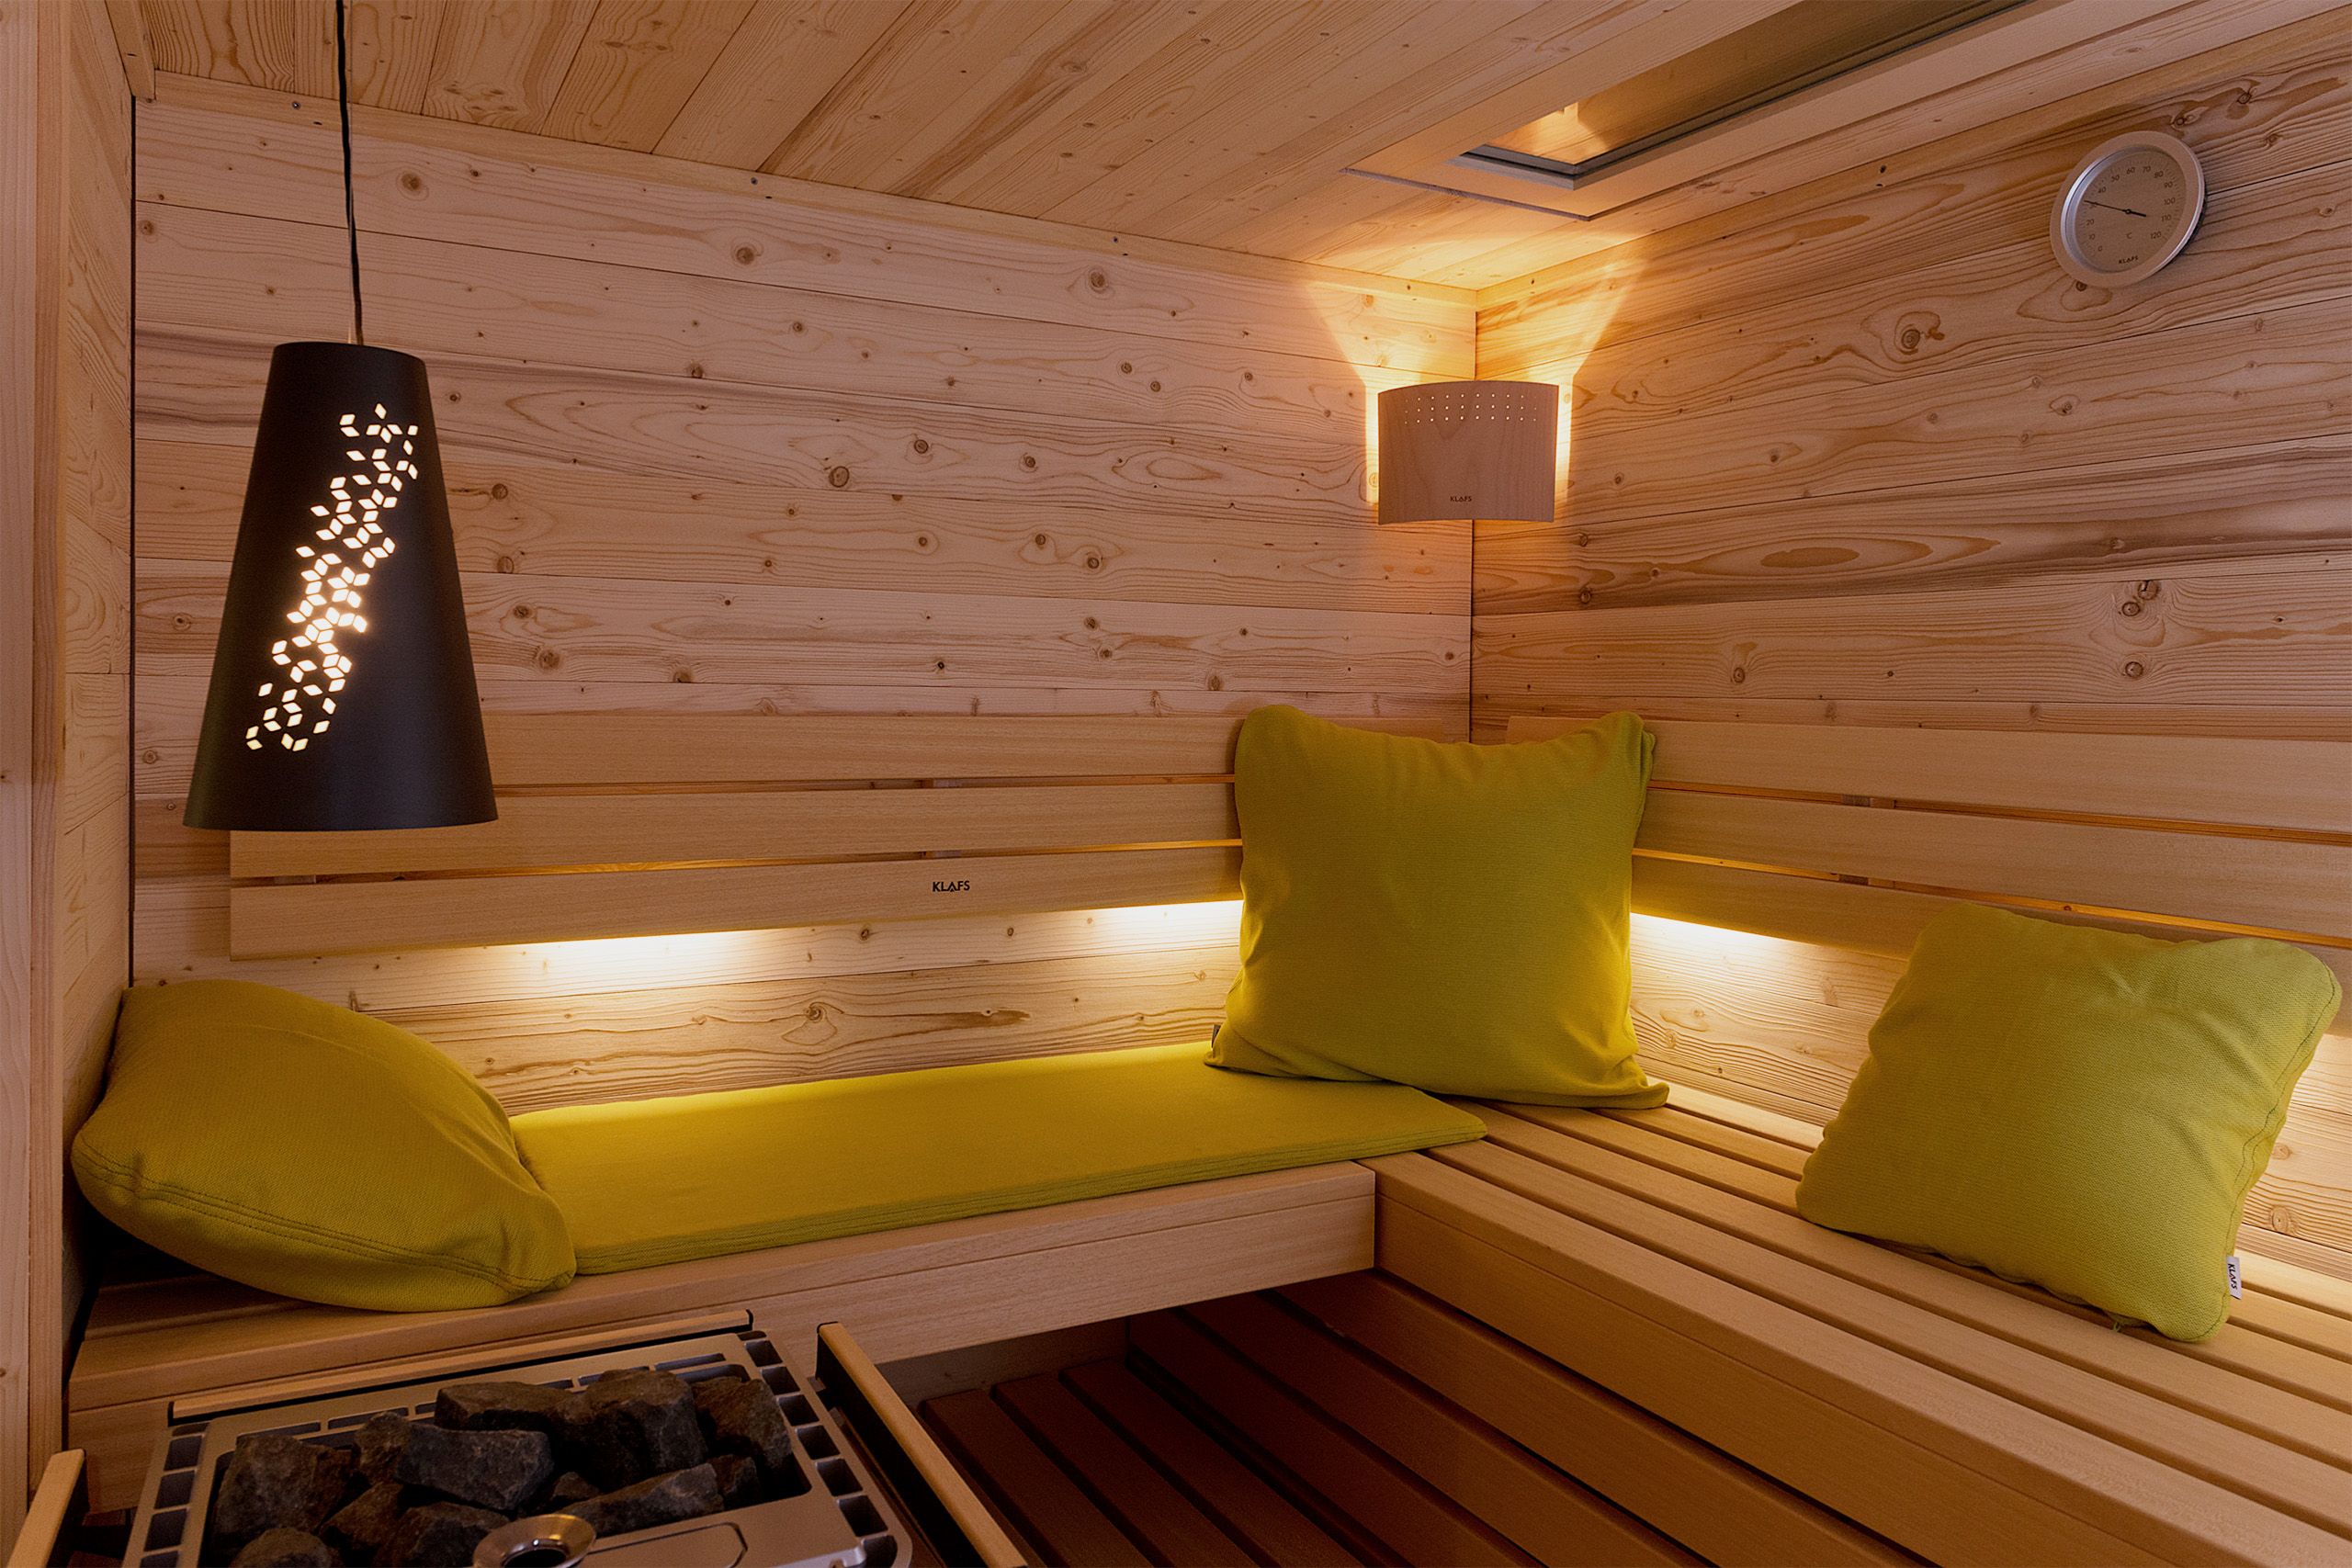 Klafs Home Sauna Your Perfect Introduction To The Sauna World